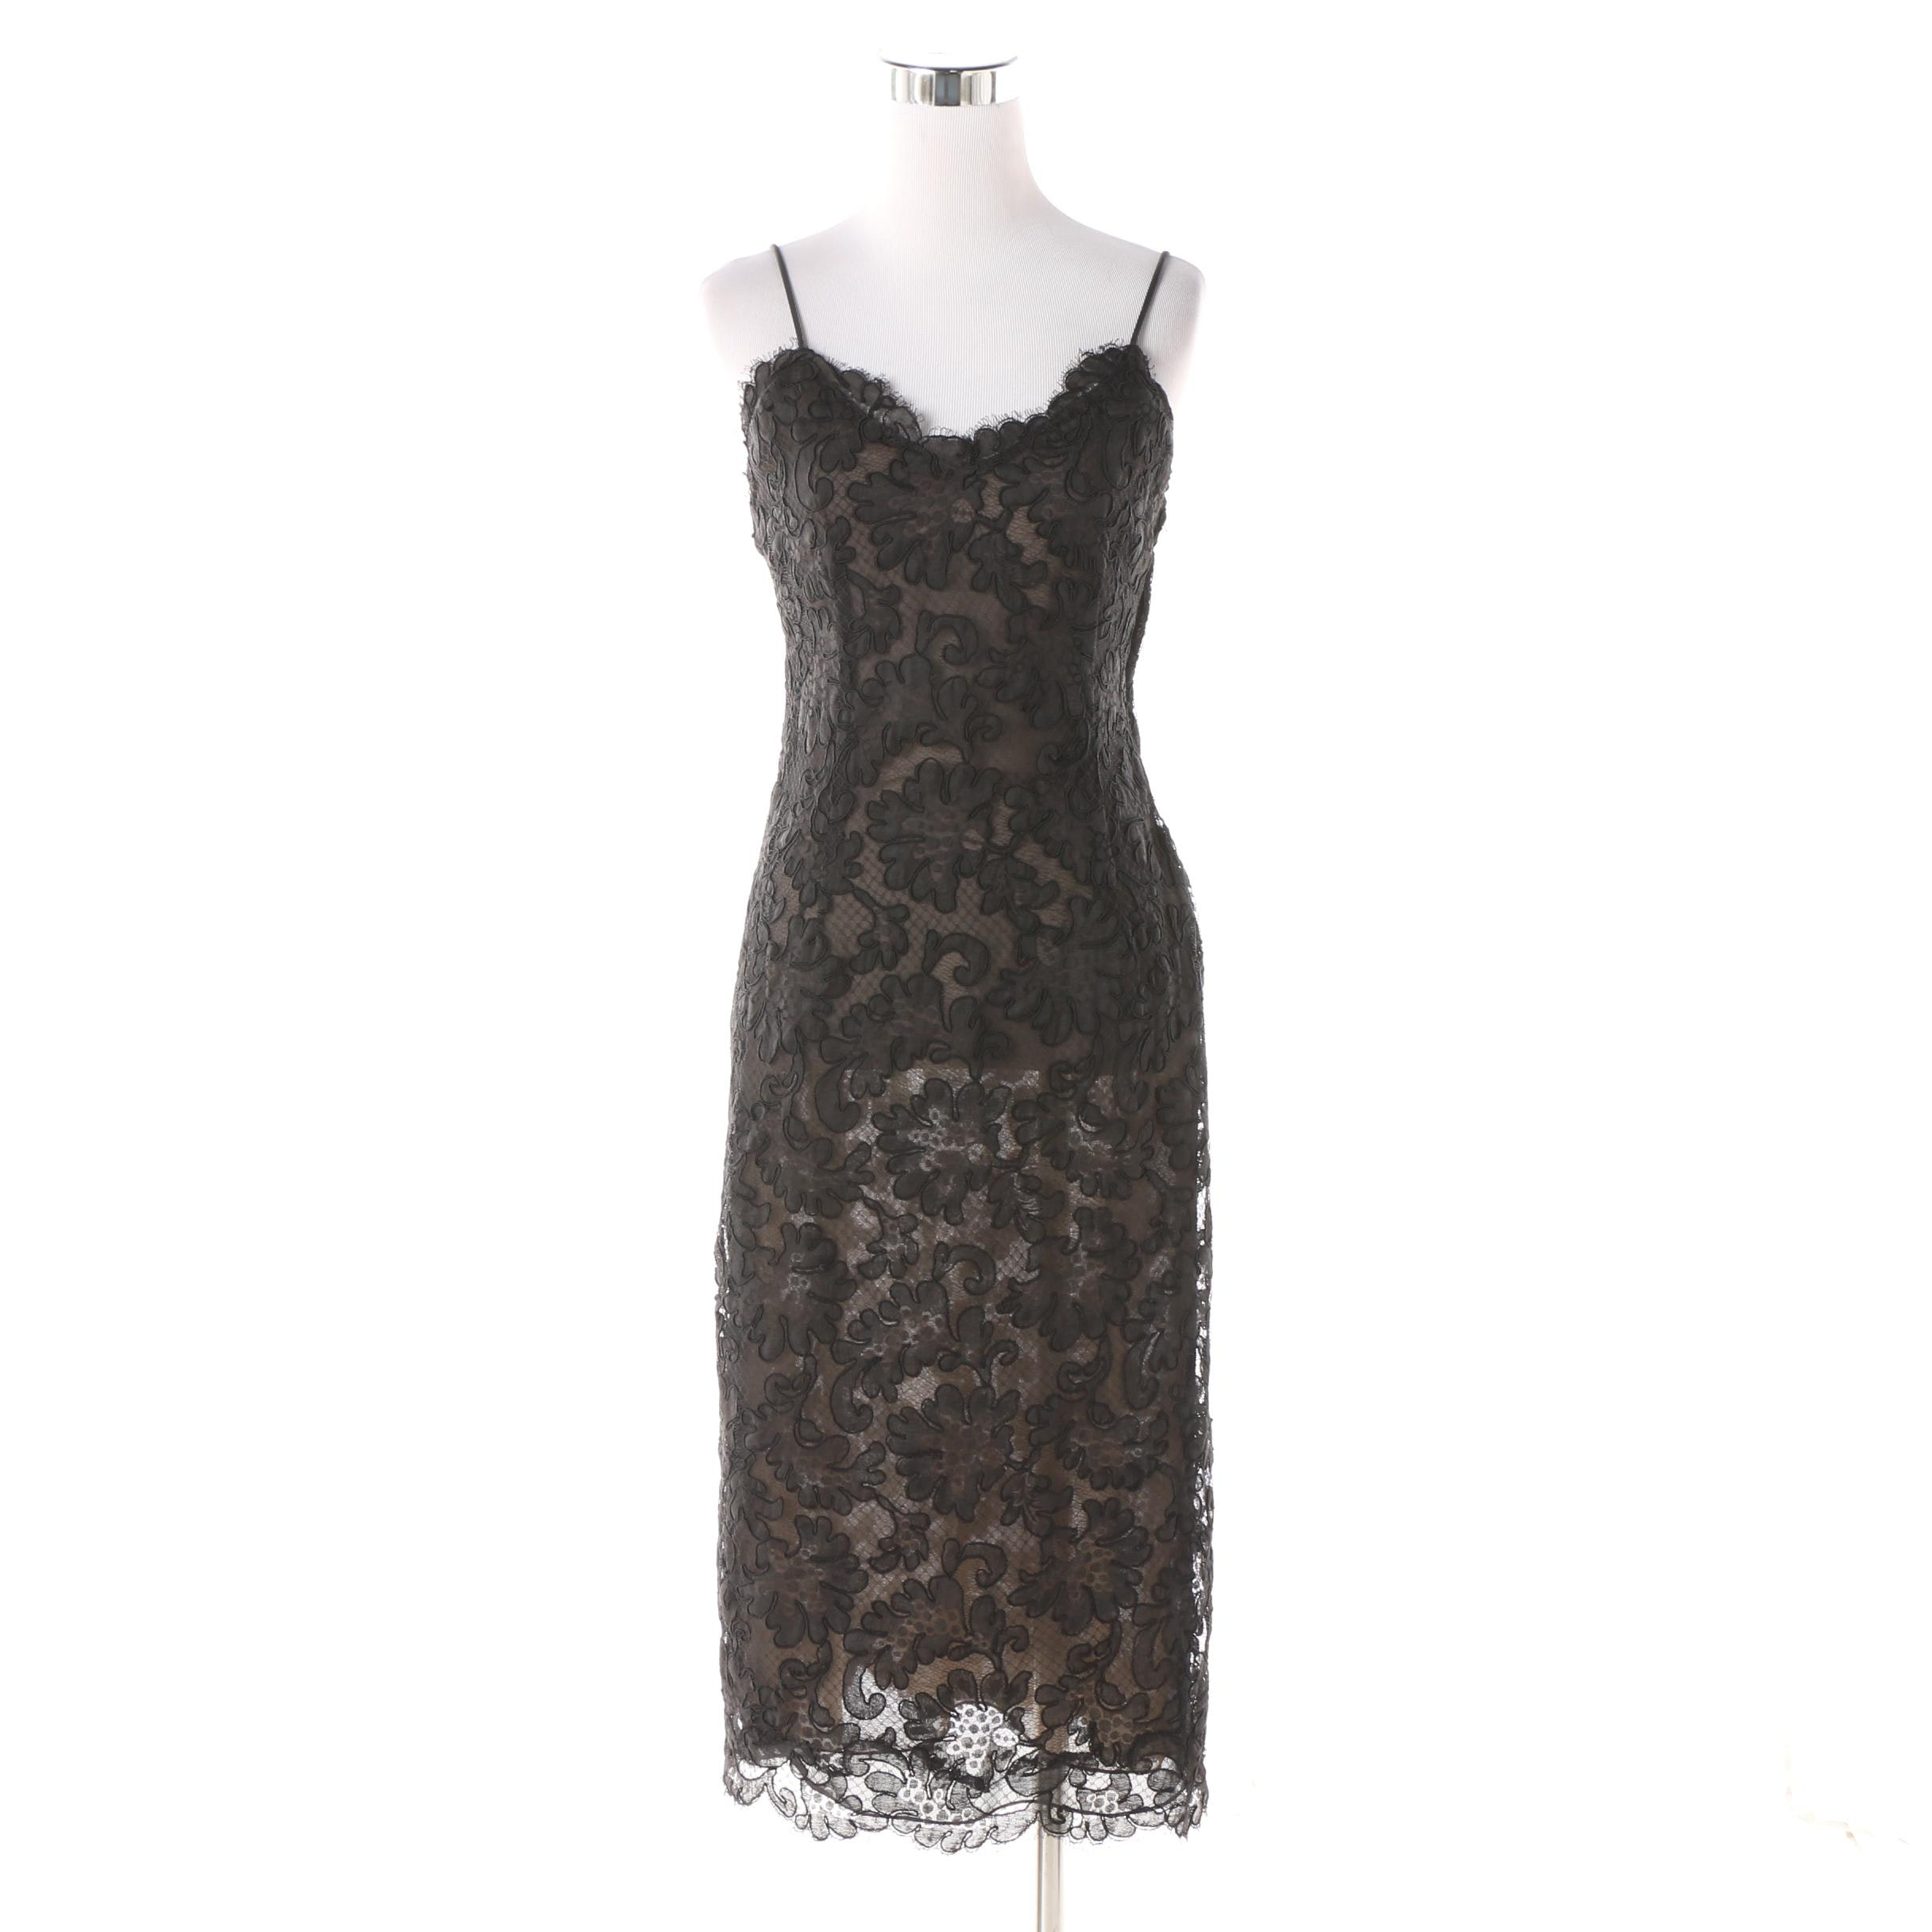 Circa 1980 Vintage Oscar de la Renta Black Lace Cocktail Dress